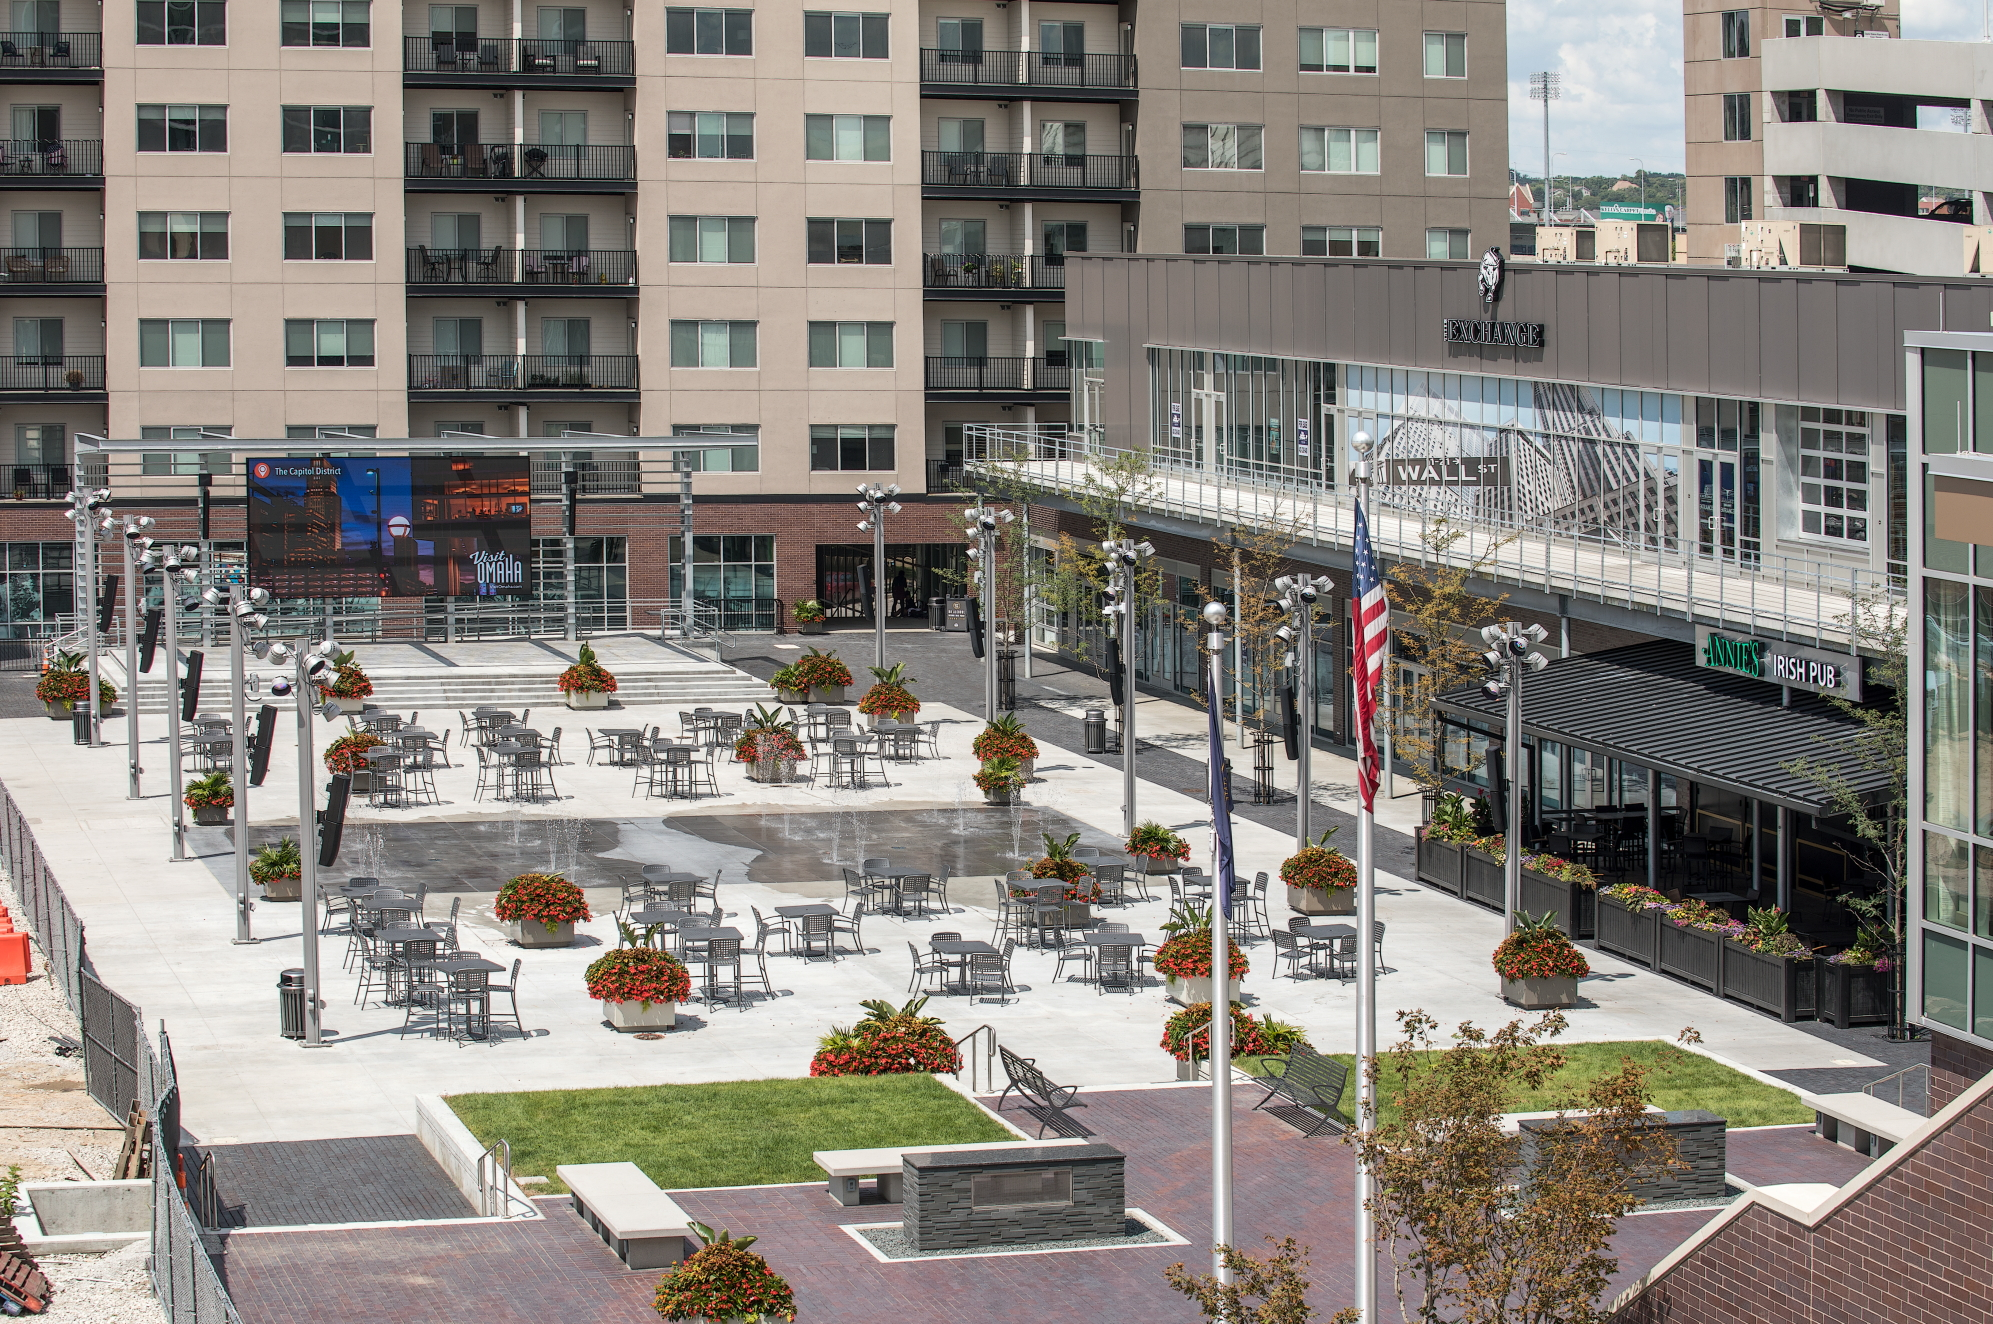 The Capitol District,  opened in 2017,   occupies a key site for the future of Downtown Omaha, connecting the Old Market to the events district and linking the Riverfront to the downtown business district. The plaza contains 90,000 sq. feet of retail and restaurant space, 20,000 sq. feet of office use, and a direct connection to the 333 room, full-service Omaha Marriott Downtown. It's the urban spot where fun-seekers can live, eat and drink in one community—all within walking distance of Omaha's best civic, cultural and entertainment venues. The football field sized plaza also consists of a 60 ft stage, and an outdoor video screen making this a perfect intimate venue for personal sporting events.